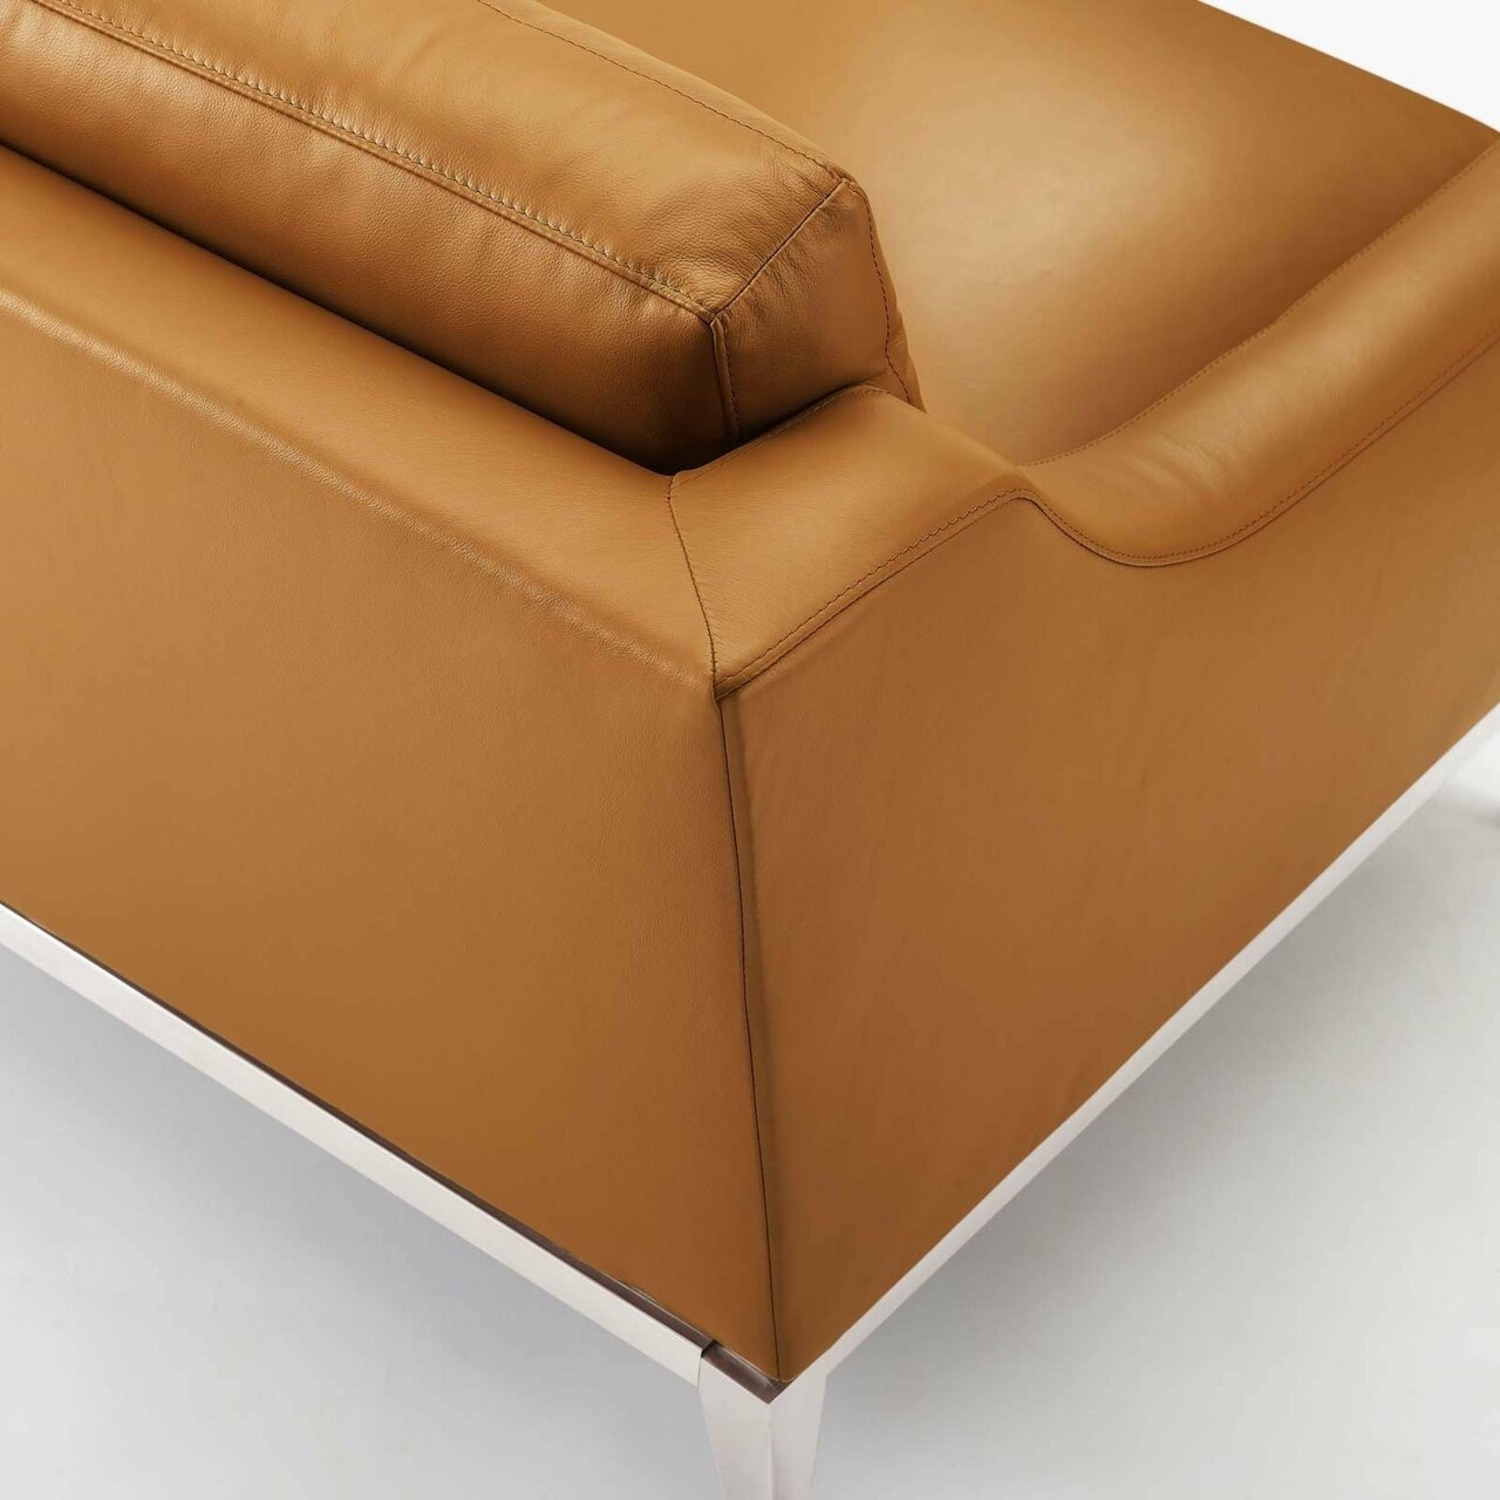 Sofa In Tan Leather Upholstery W/ Steel Base - image-6